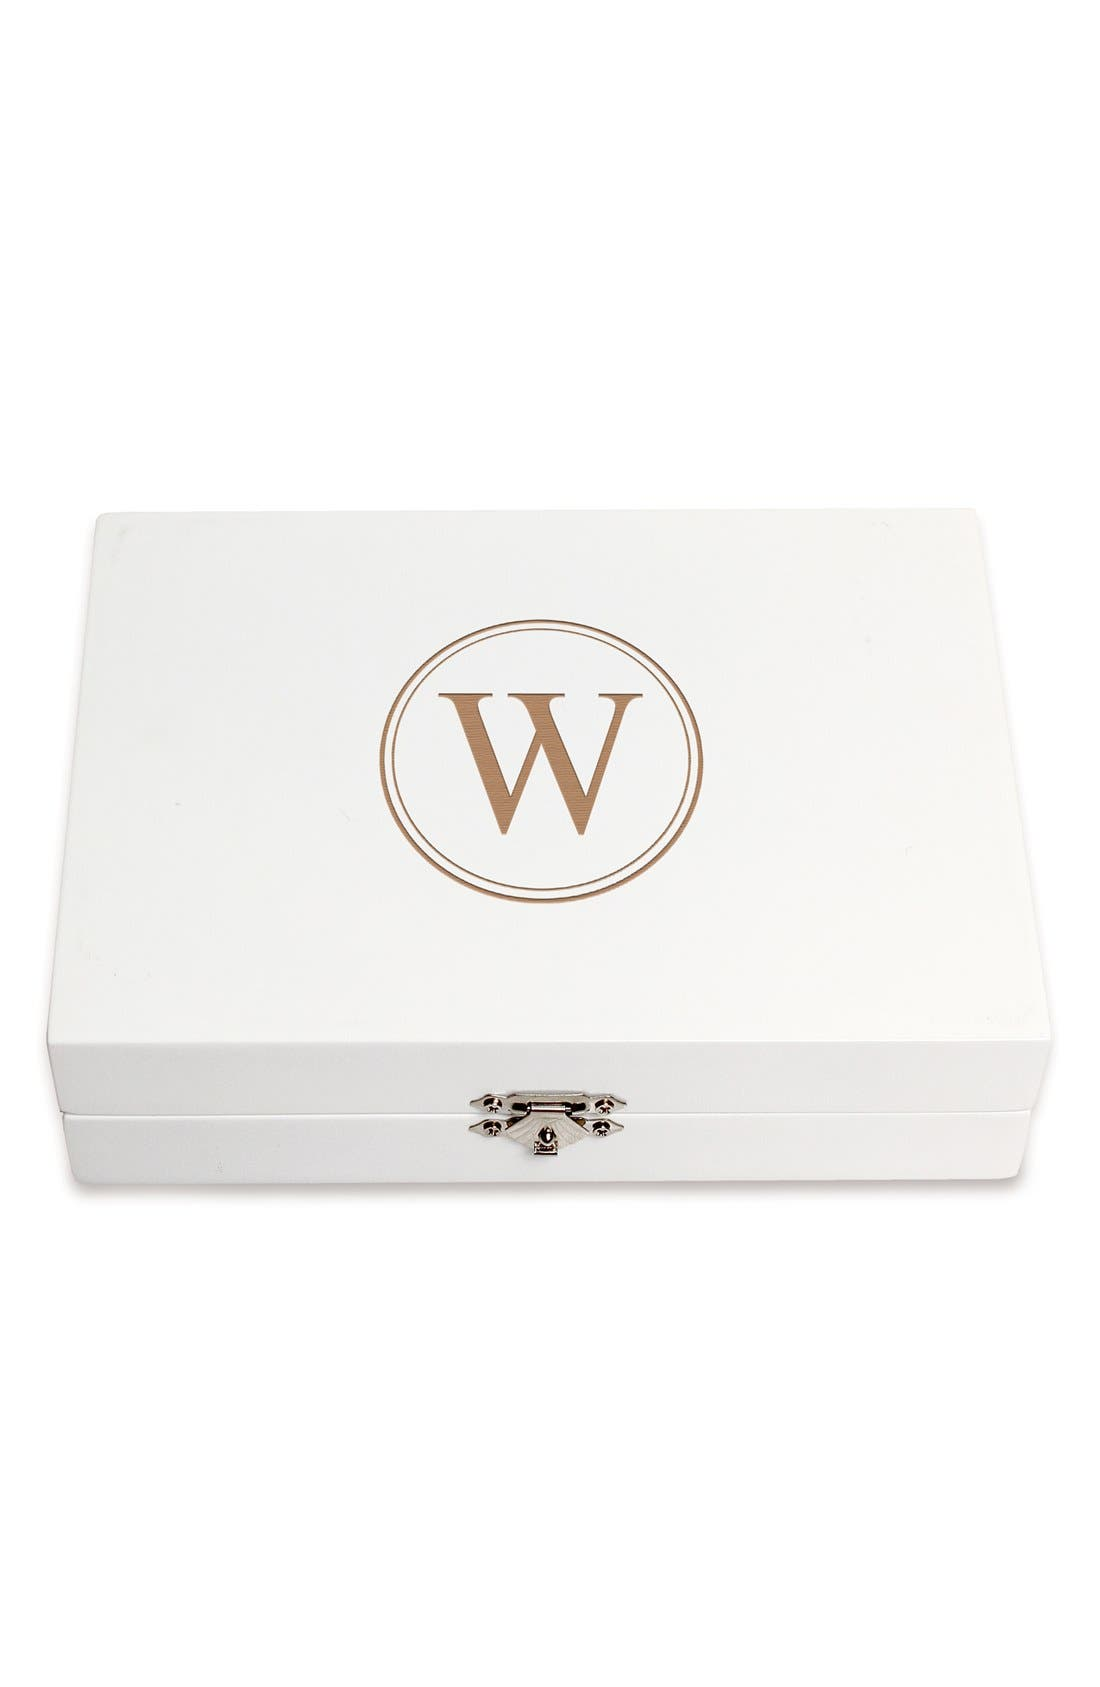 Monogram Wooden Jewelry Box,                             Main thumbnail 51, color,